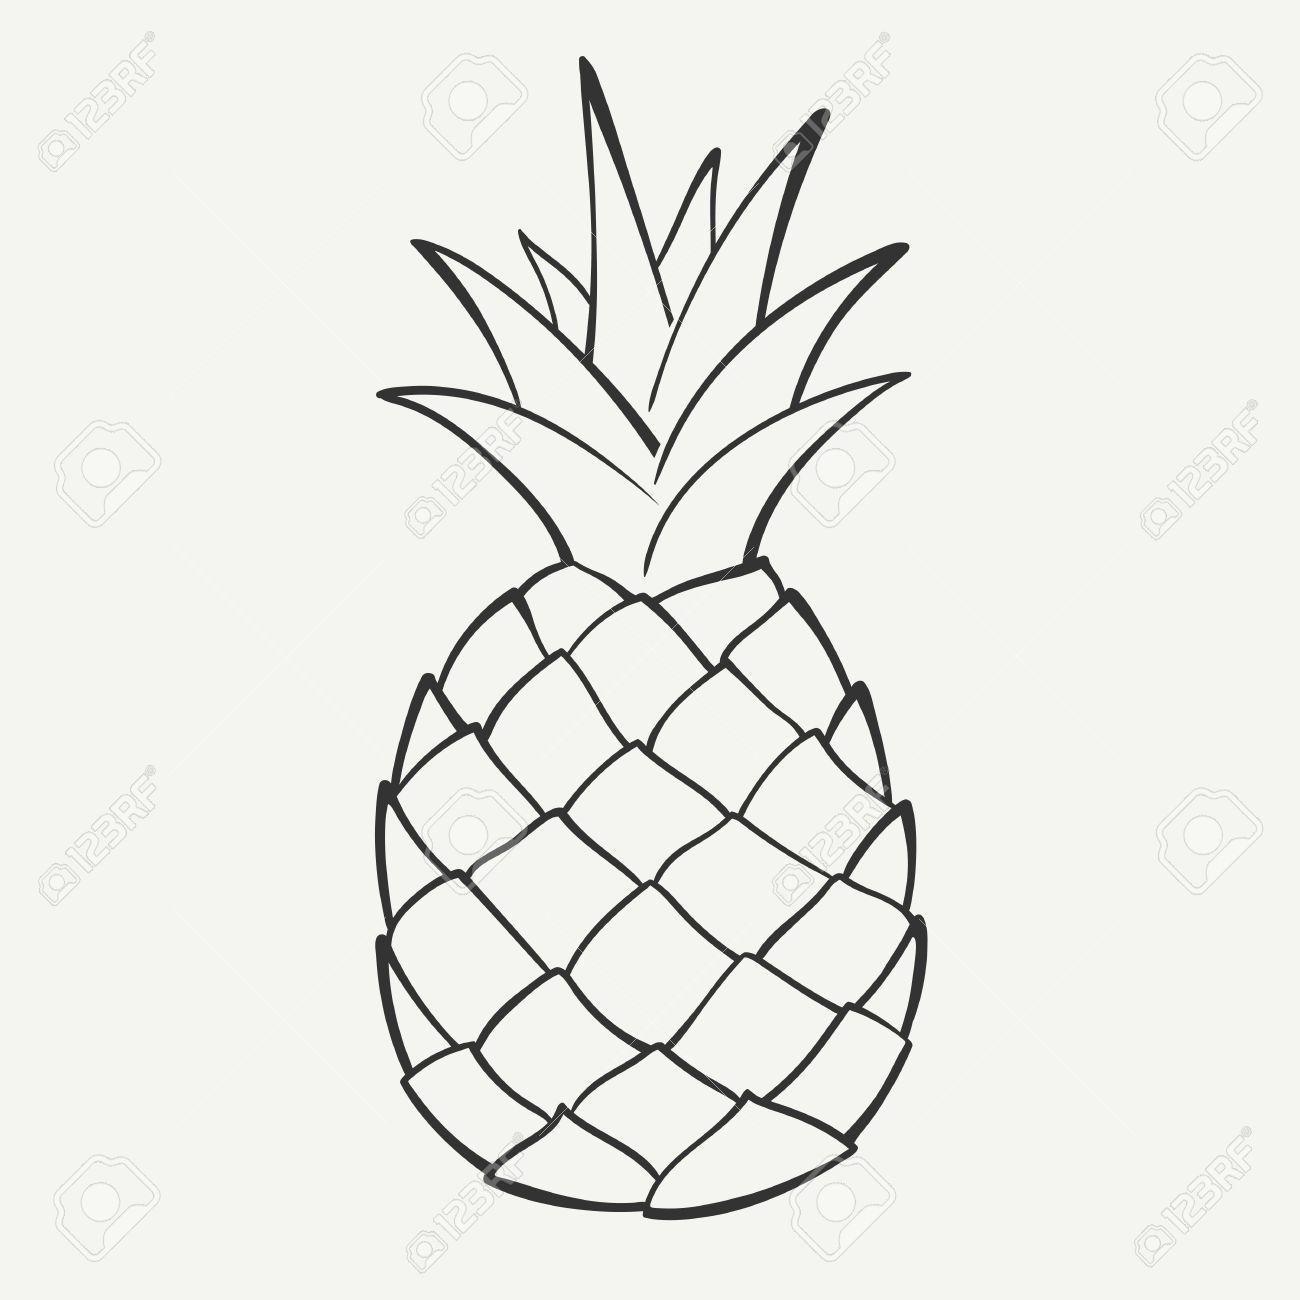 Black and white pineapple clipart 2 » Clipart Portal.